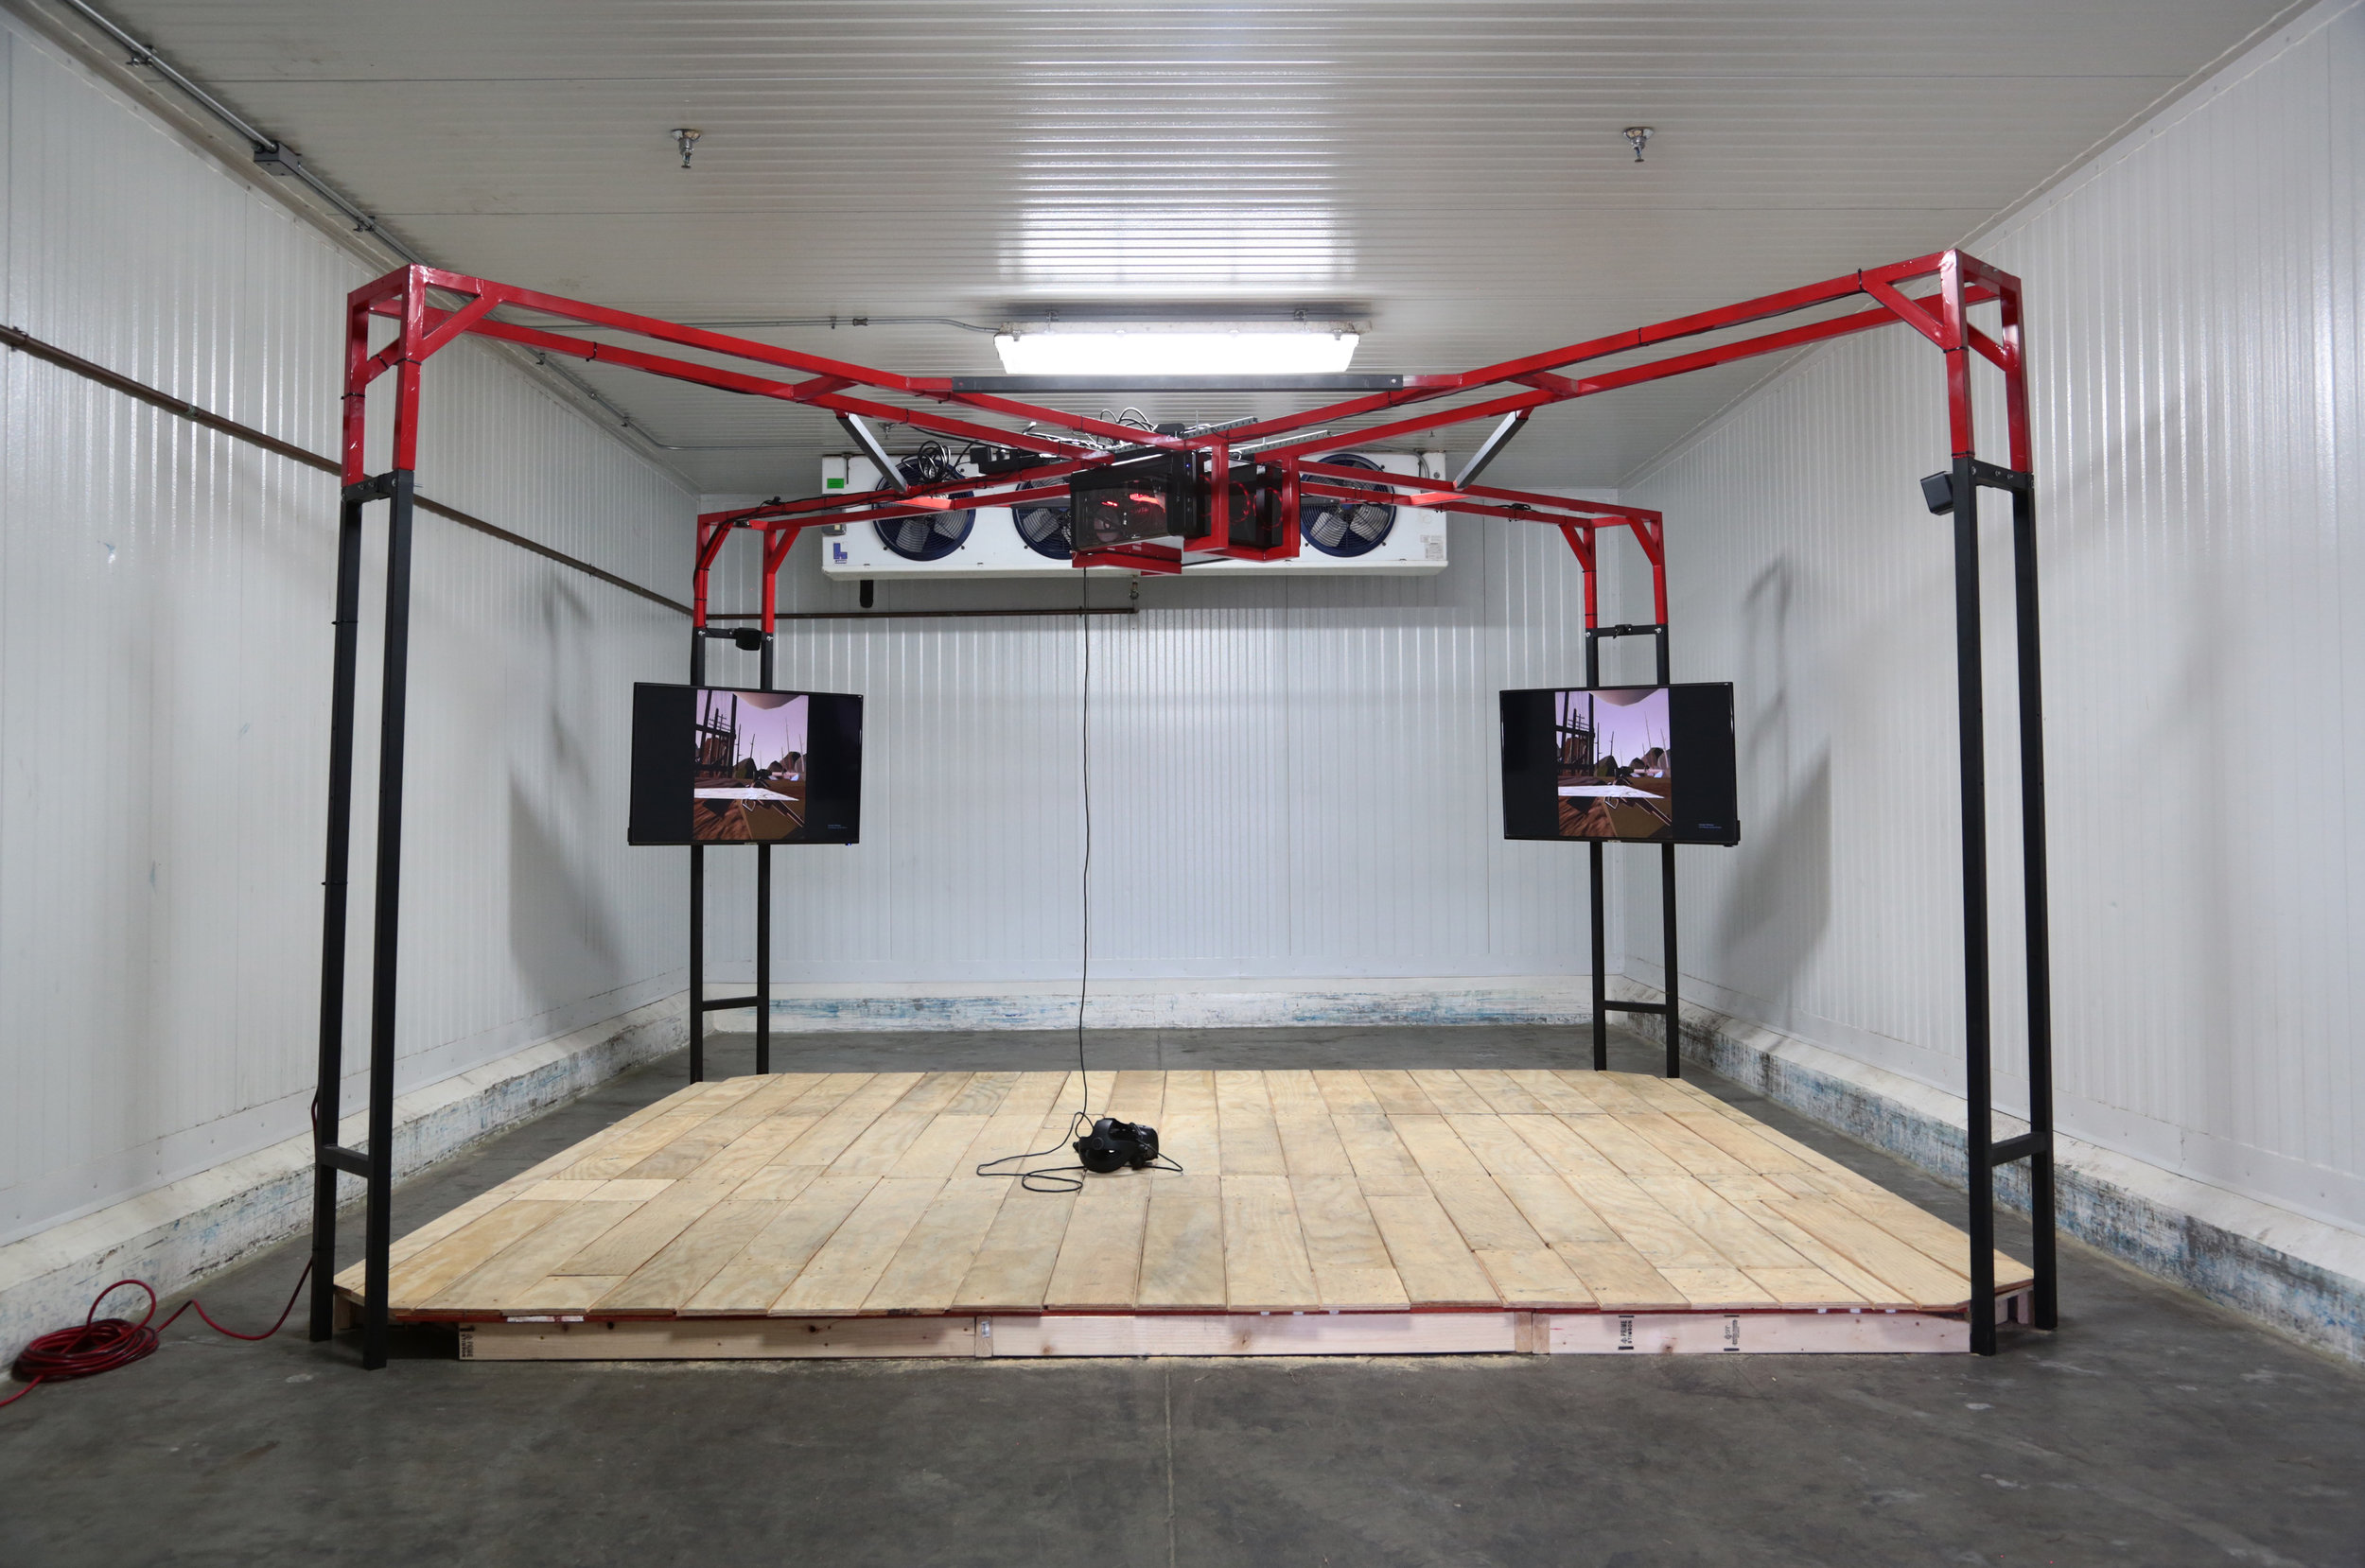 Installation view of Filip Kostic  Landgrab the Musical in Virtual Reality   SPRING/BREAK Art Show LA February 15-17, 2019   Link to press release